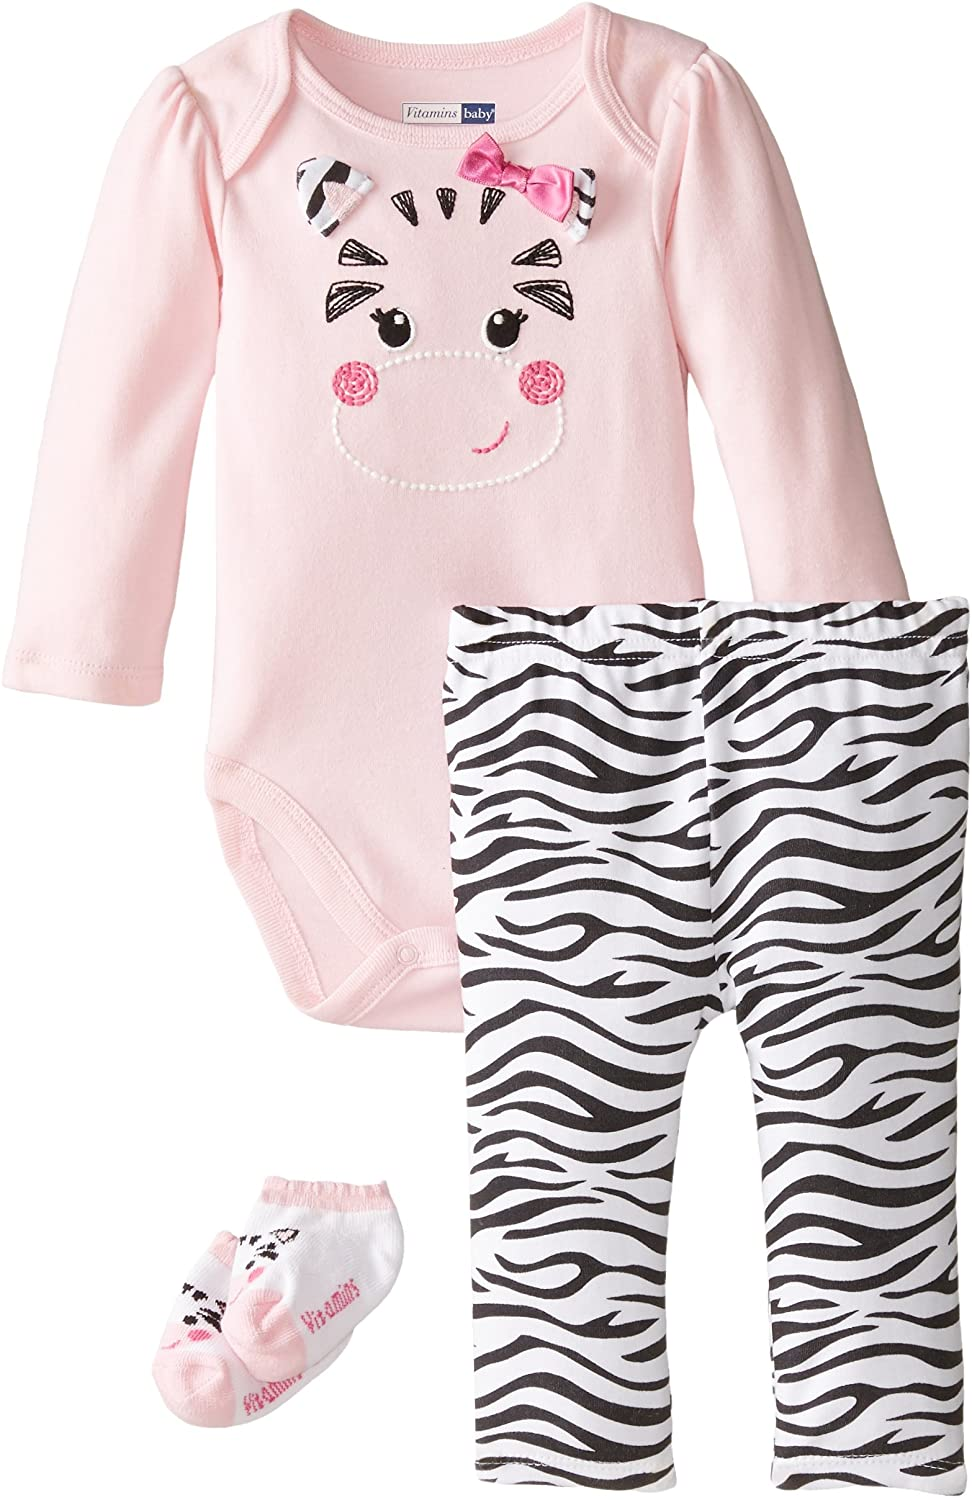 Vitamins Baby Baby Girls' Newborn Zippy Zebra 3 Piece Creeper Pant Set